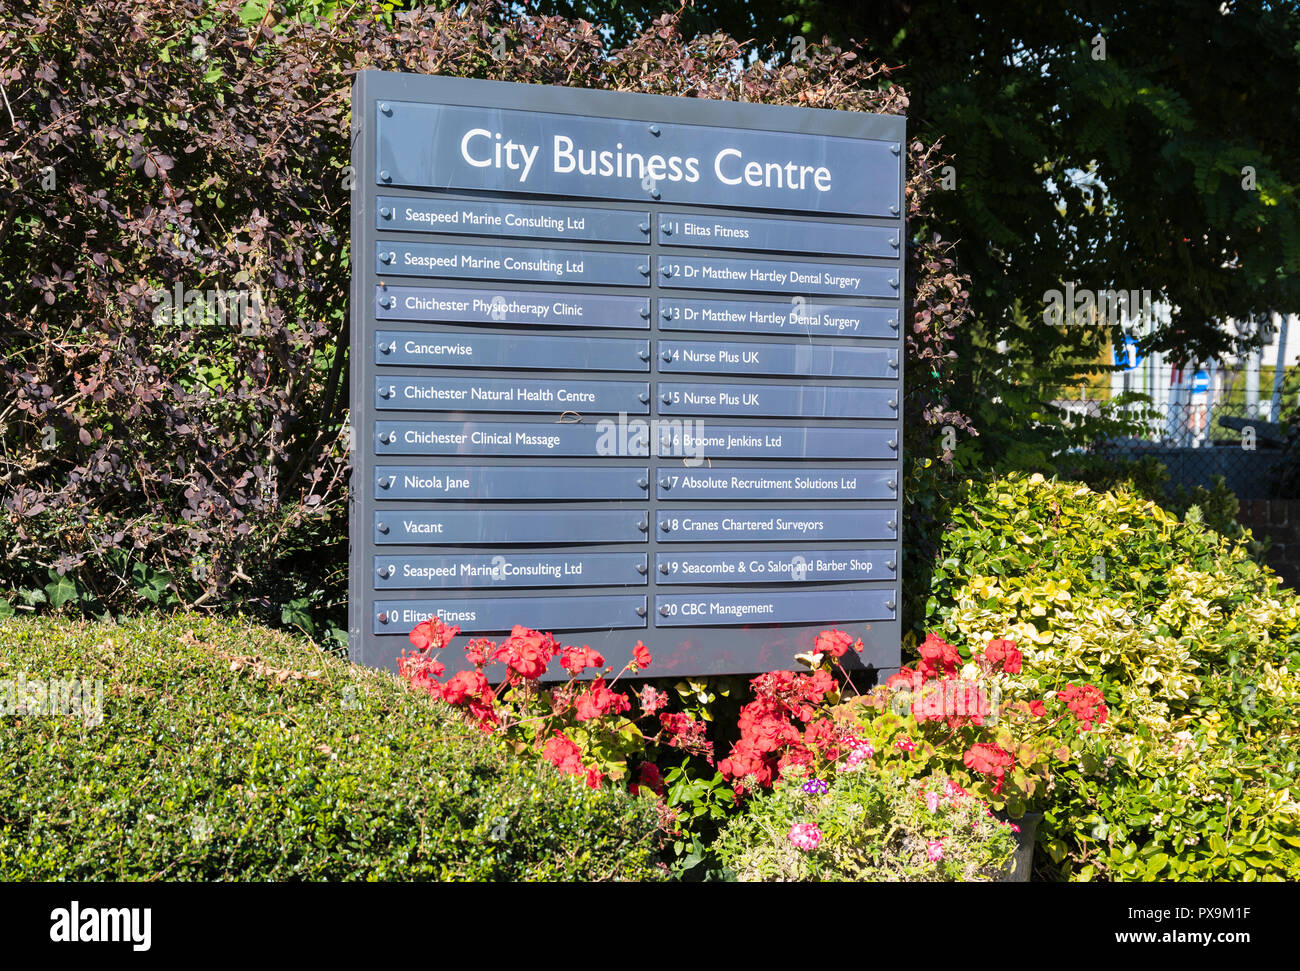 City Business Centre sign showing a list of businesses in the centre, in Chichester, West Sussex, England, UK. - Stock Image